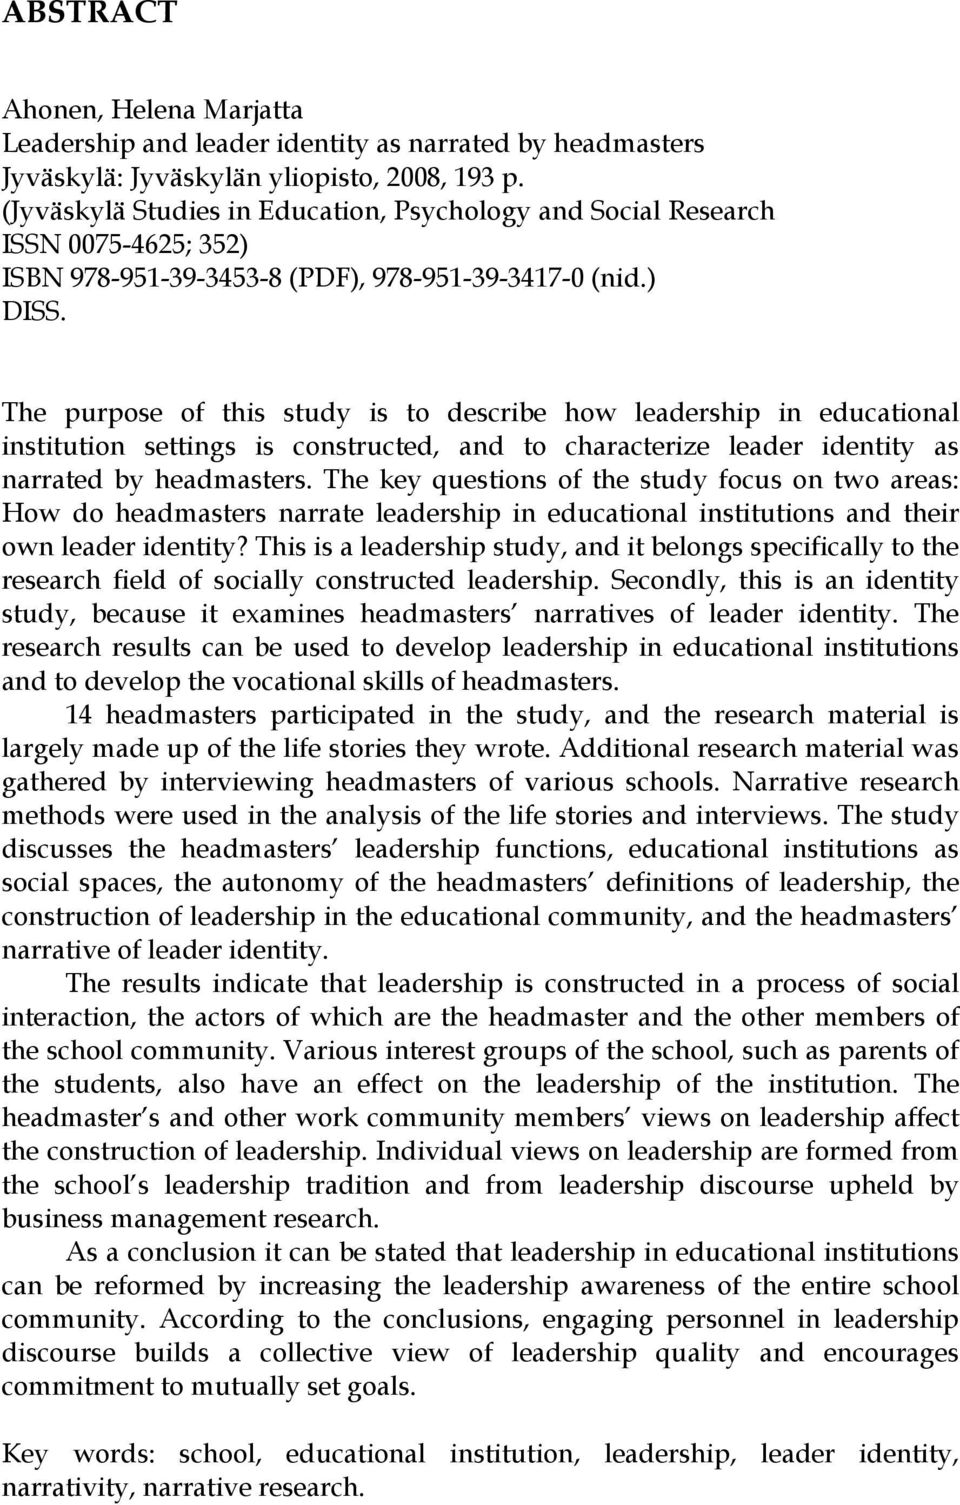 The purpose of this study is to describe how leadership in educational institution settings is constructed, and to characterize leader identity as narrated by headmasters.